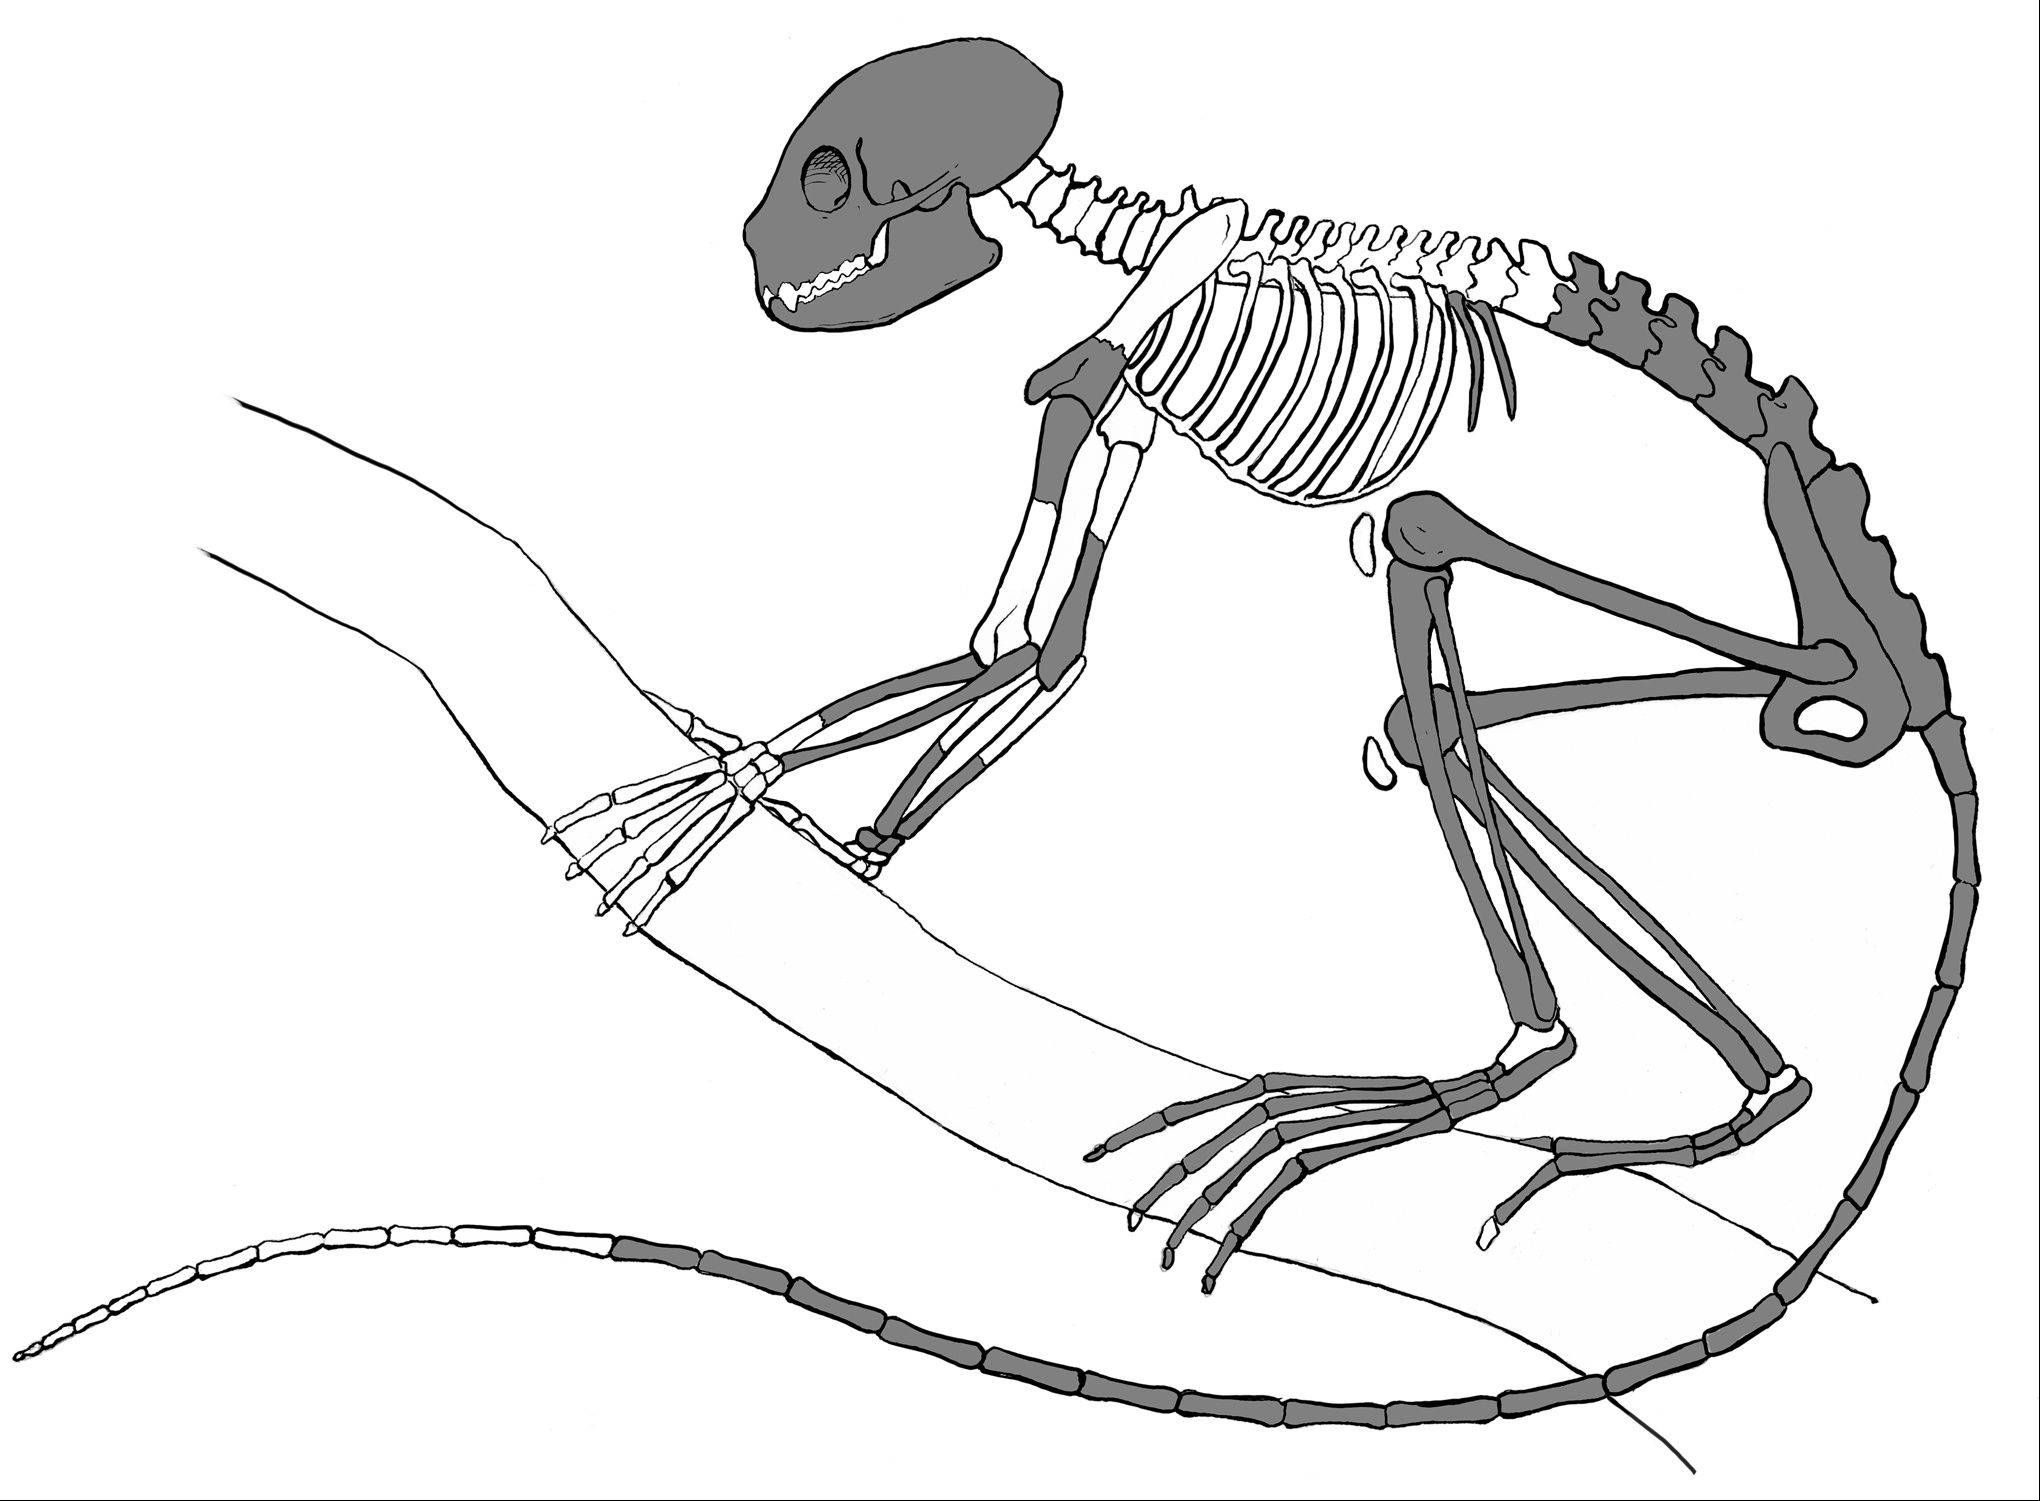 An artist's illustration of the skeleton of Archicebus achilles. The darkened bones represent the known bony elements of the skeleton found in China. Northern Illinois University professor Dan Gebo, of Elgin, was part of the international team that discovered the tiny, 55 million-year-old primate.